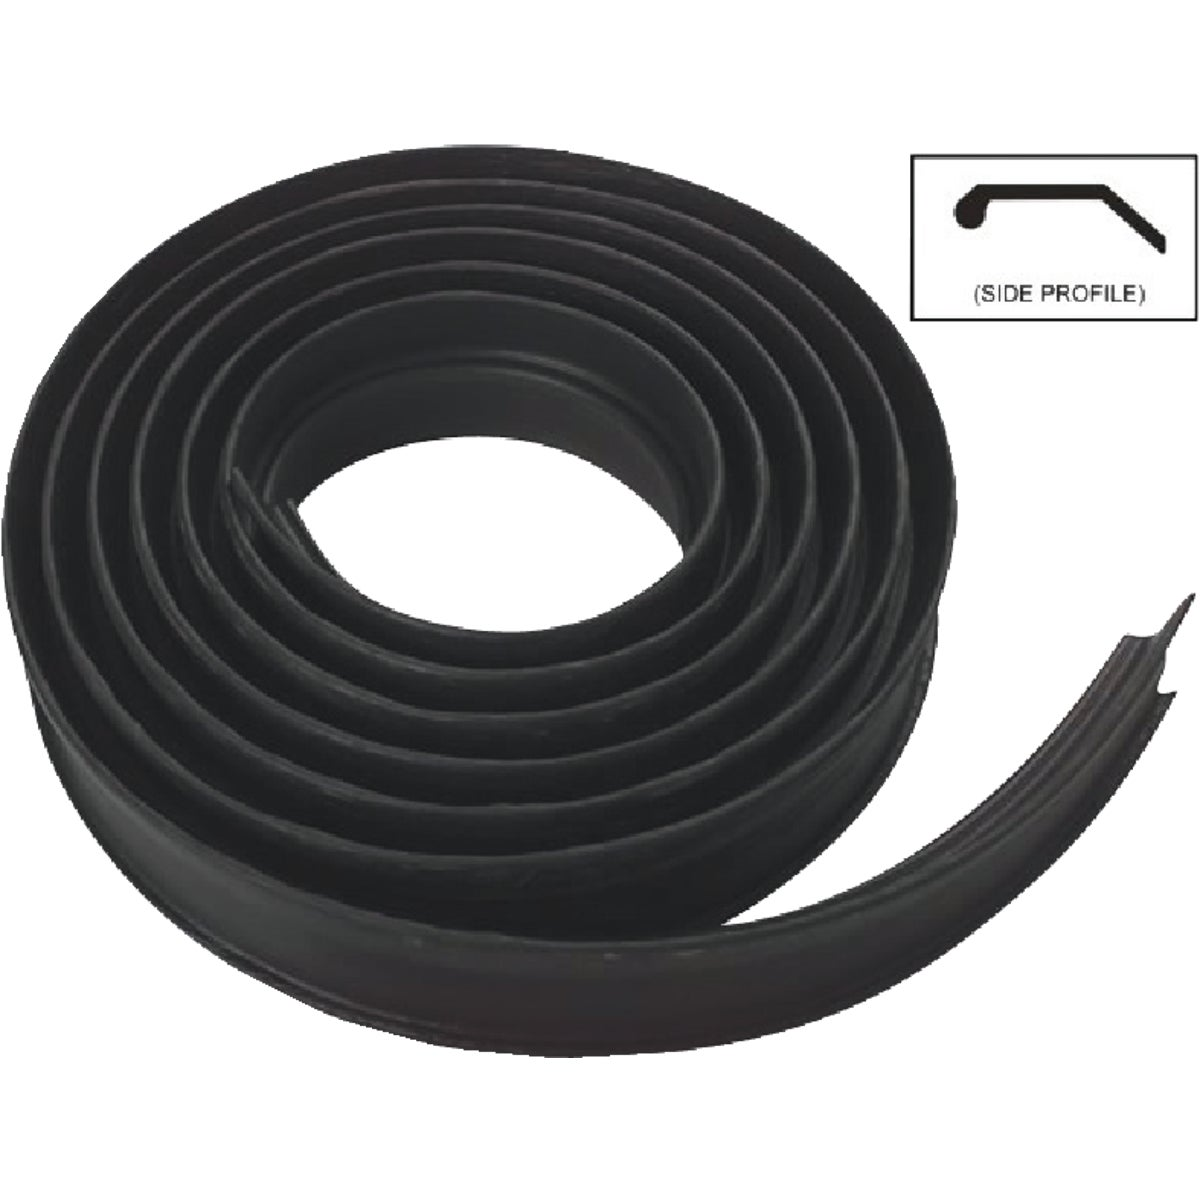 16' BLK WEATHERSTRIPPING - N281295 by National Mfg Co